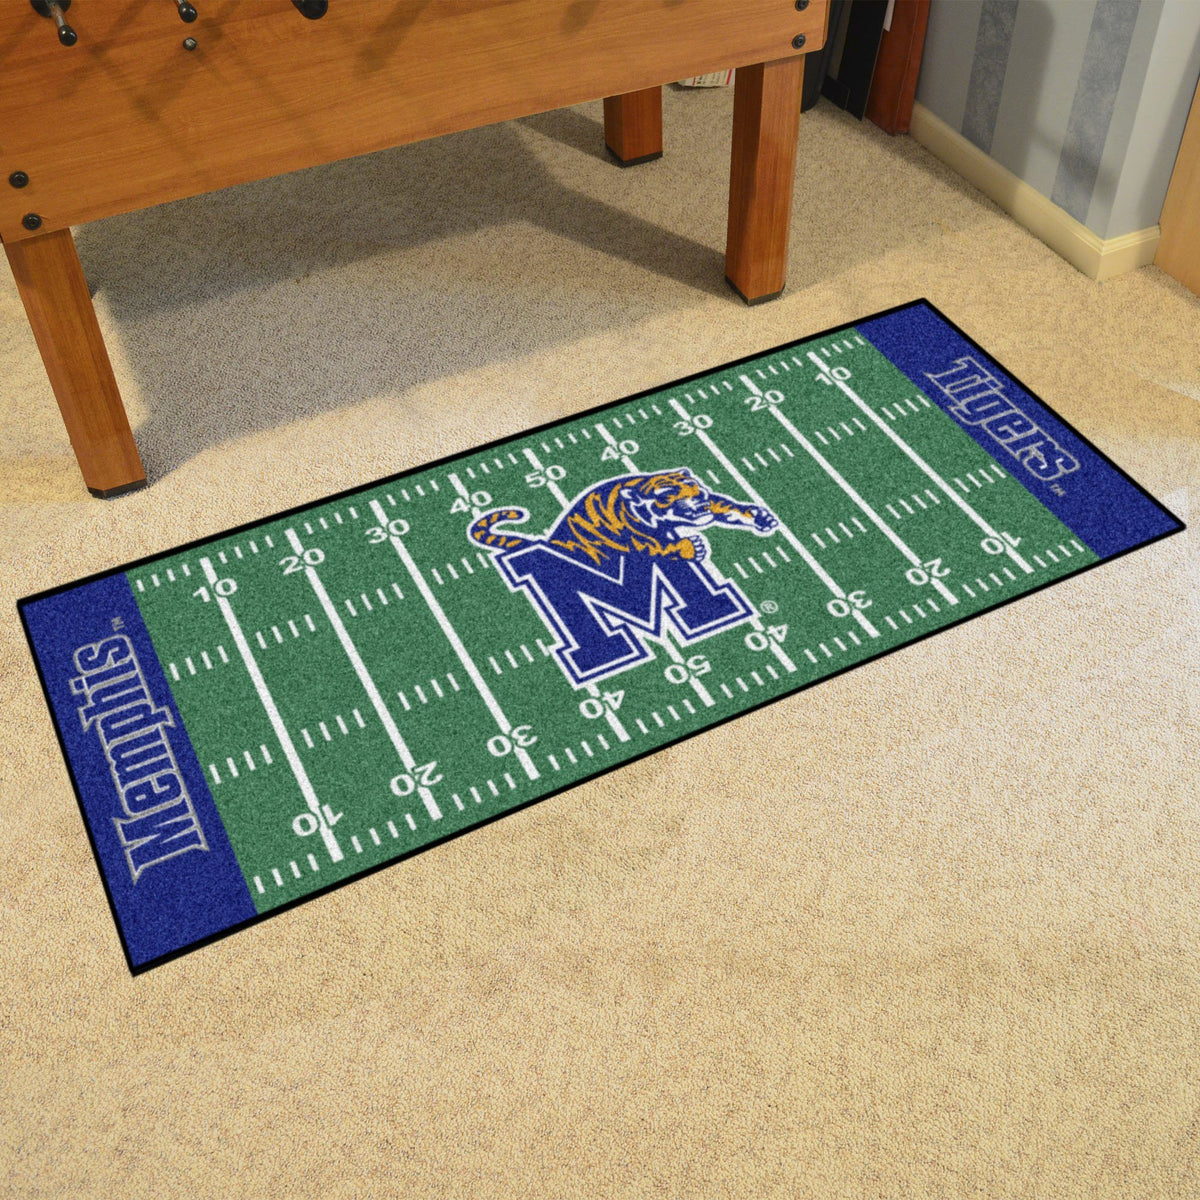 Collegiate - Football Field Runner Collegiate Mats, Rectangular Mats, Football Field Runner, Collegiate, Home Fan Mats Memphis